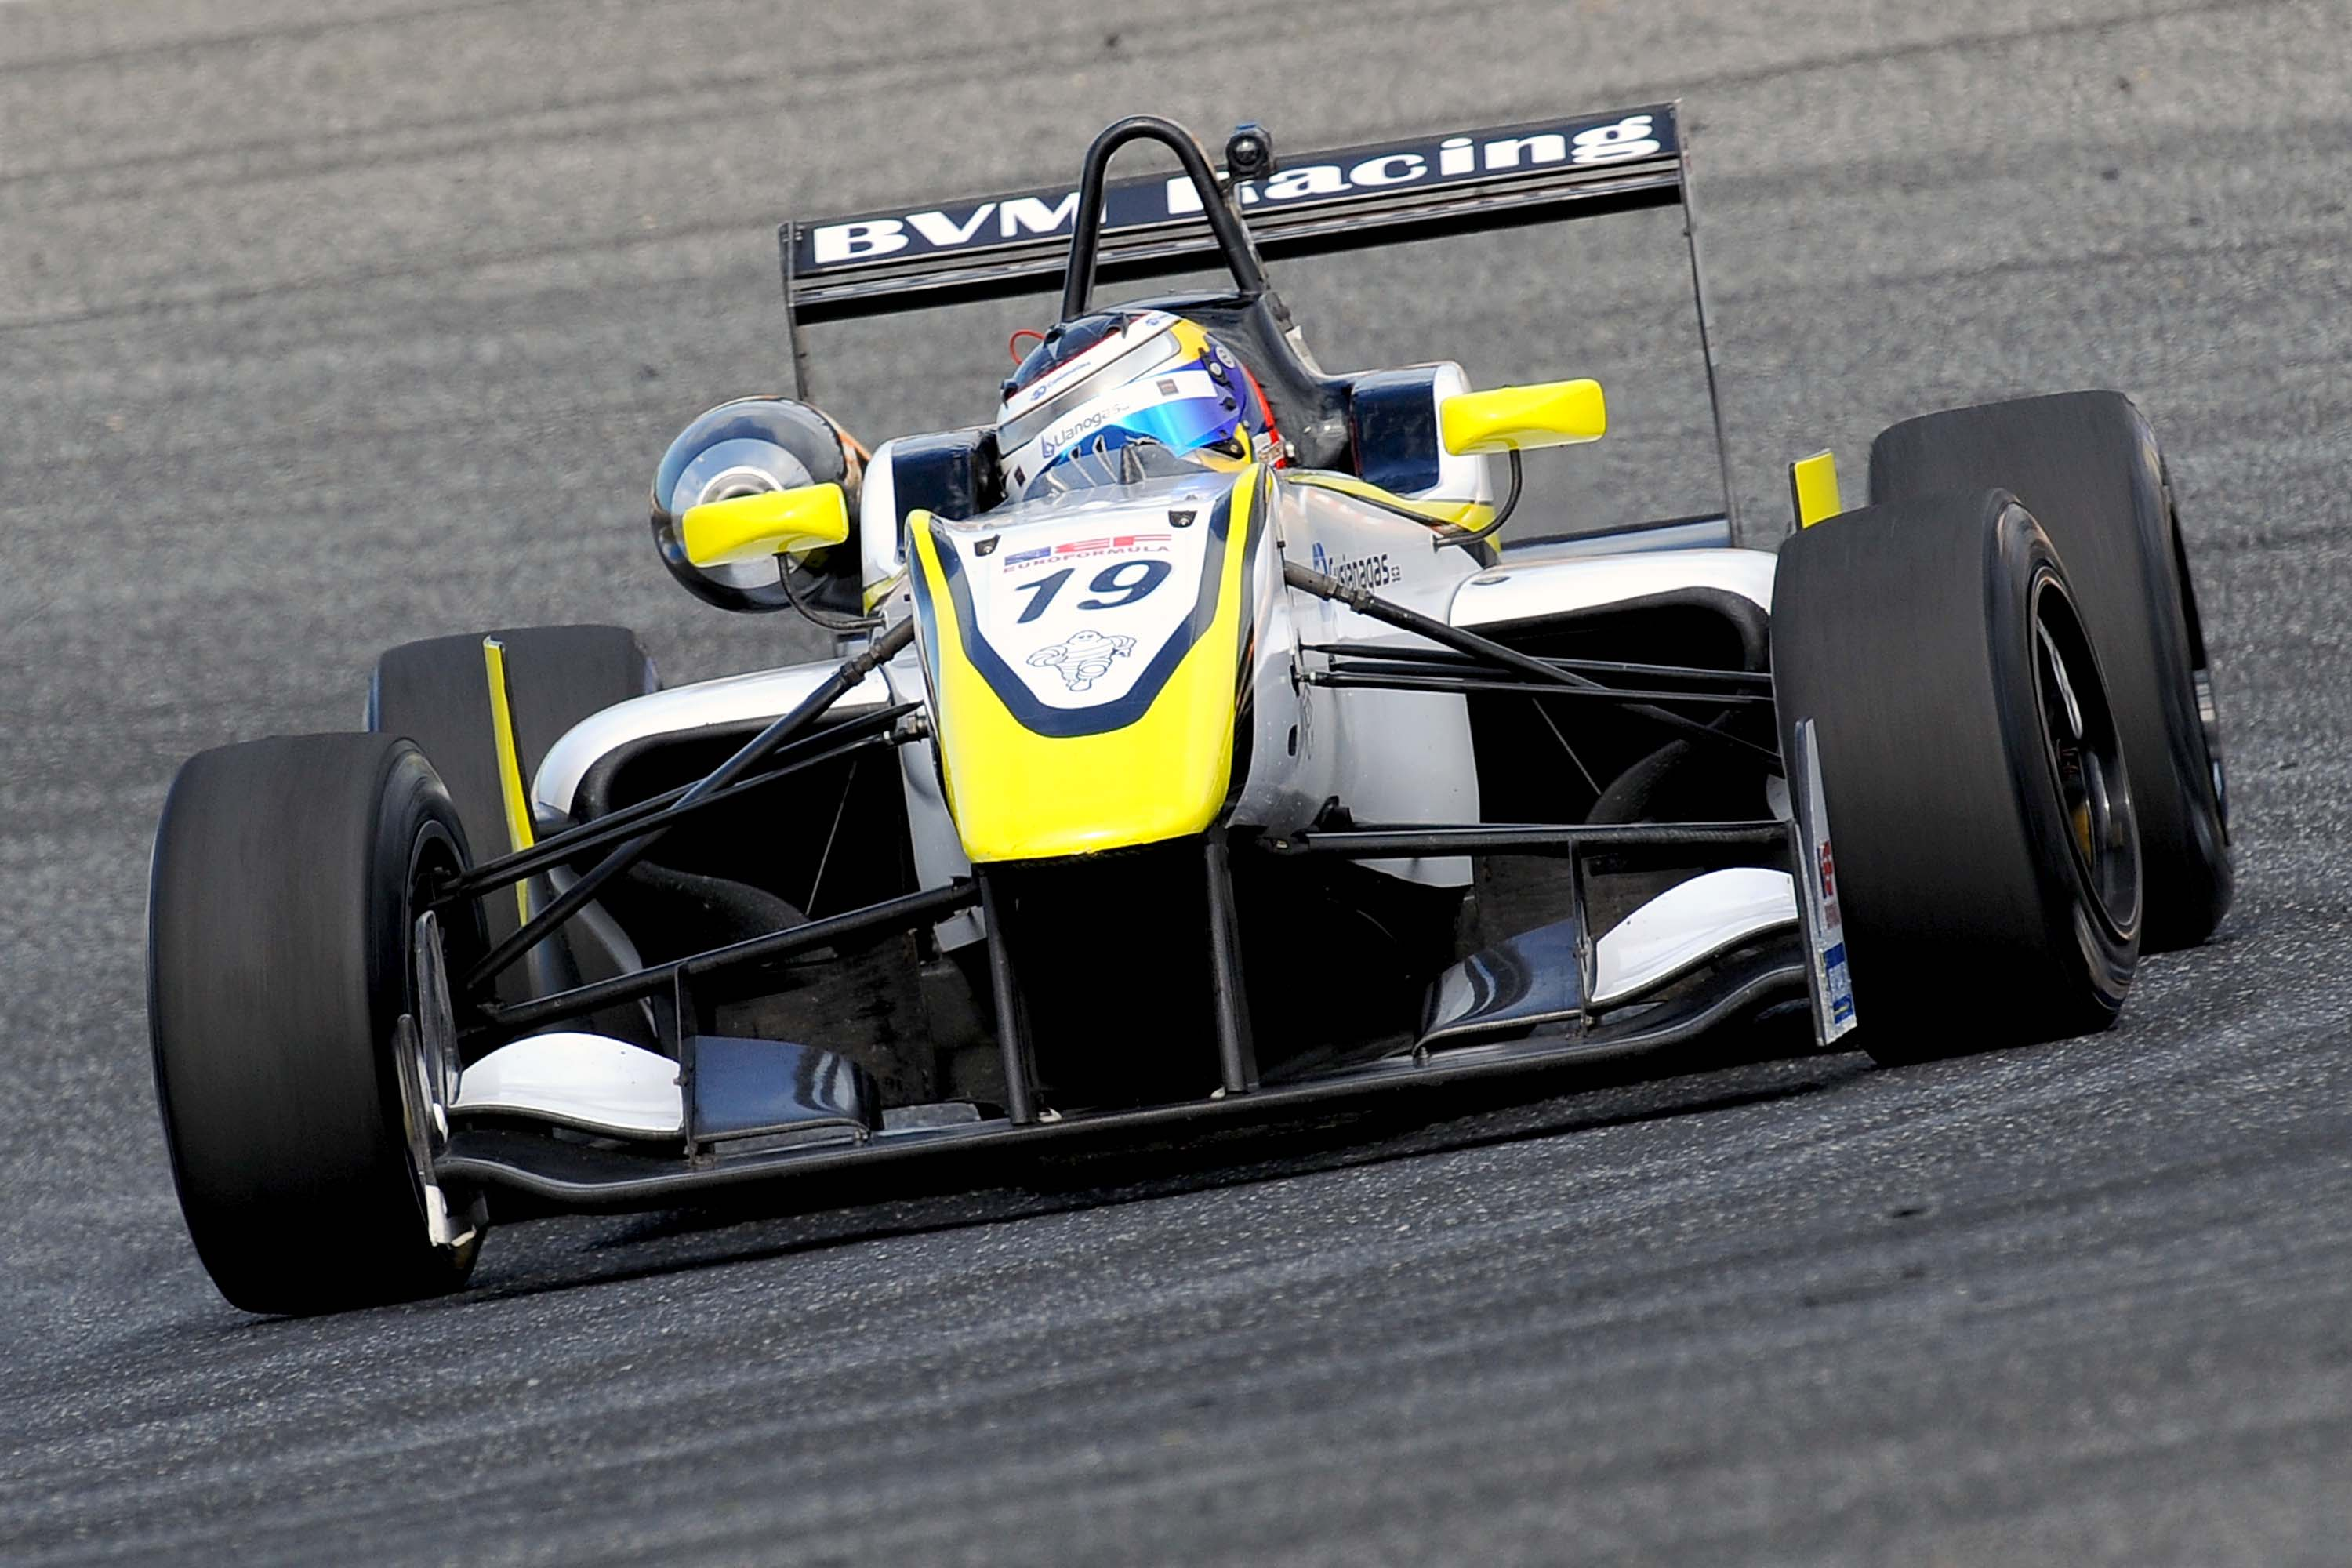 William Barbosa G. Euroformulaopen2015 Estoriol 09_05-2015_1.jpg